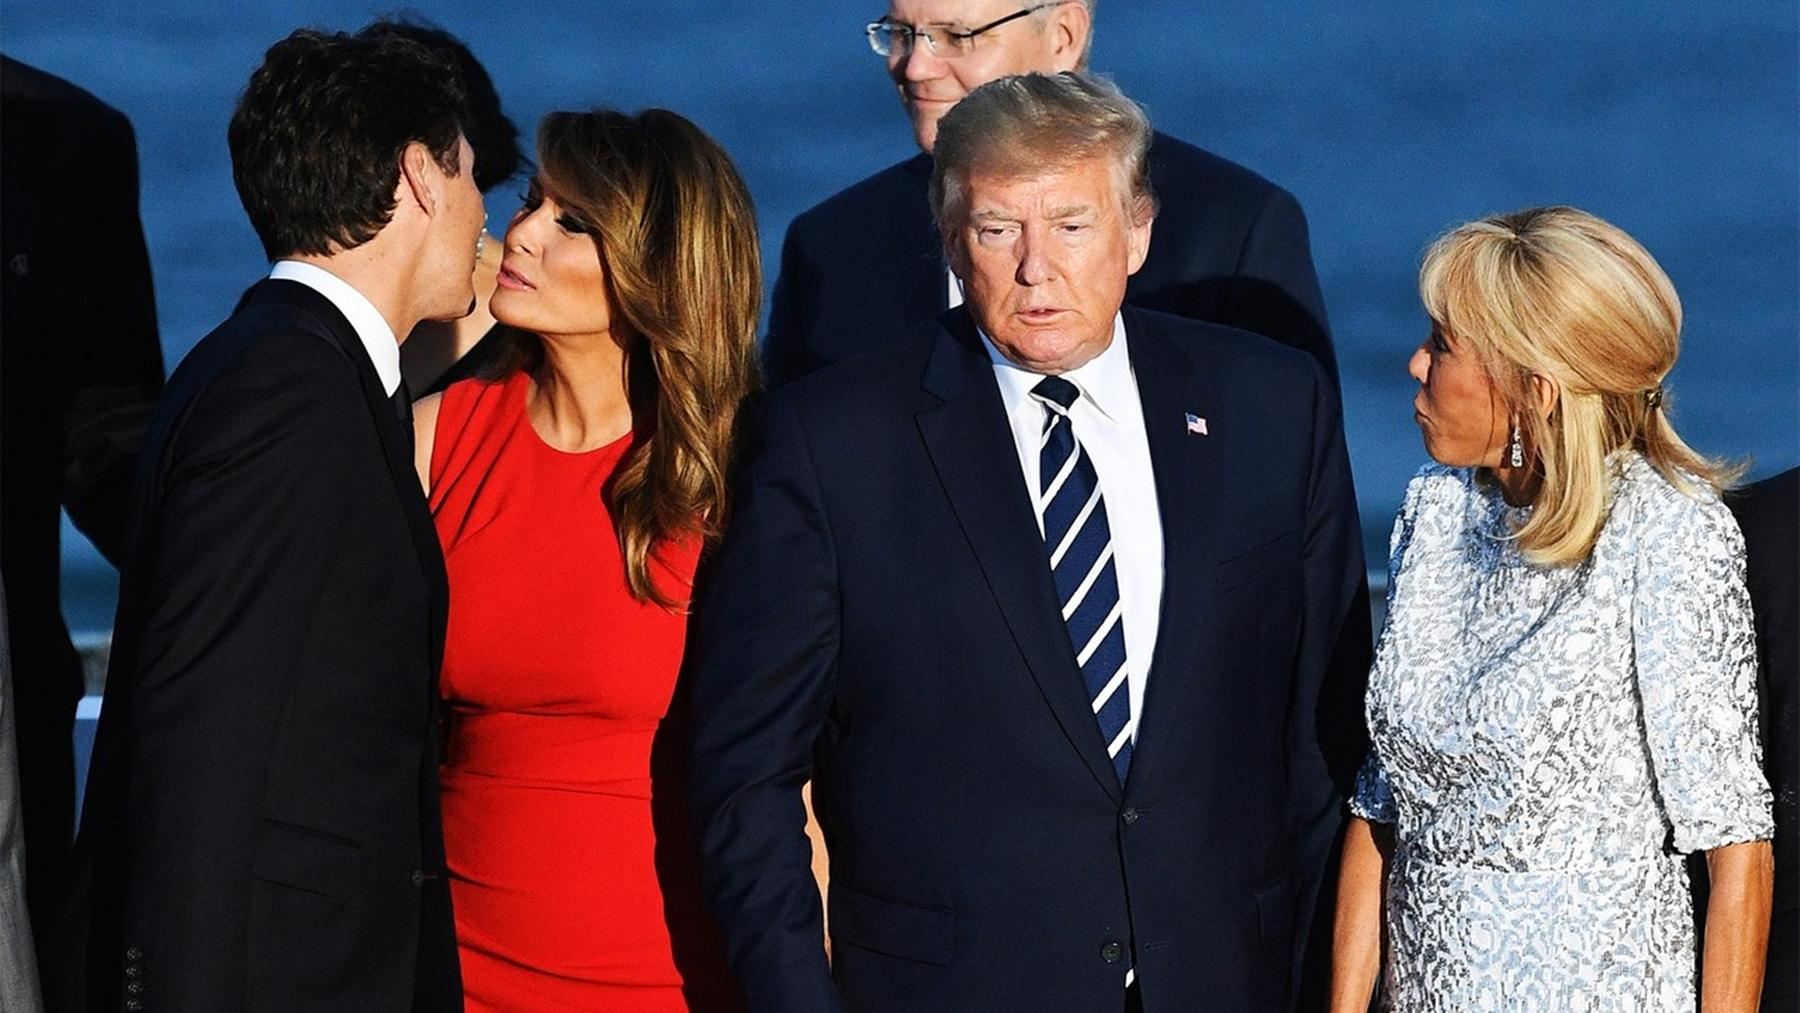 Melania Trump Looks Like She Is About To Risk It All In Viral Picture With Justin Trudeau -- The Donald And Ivanka Will Not Like This